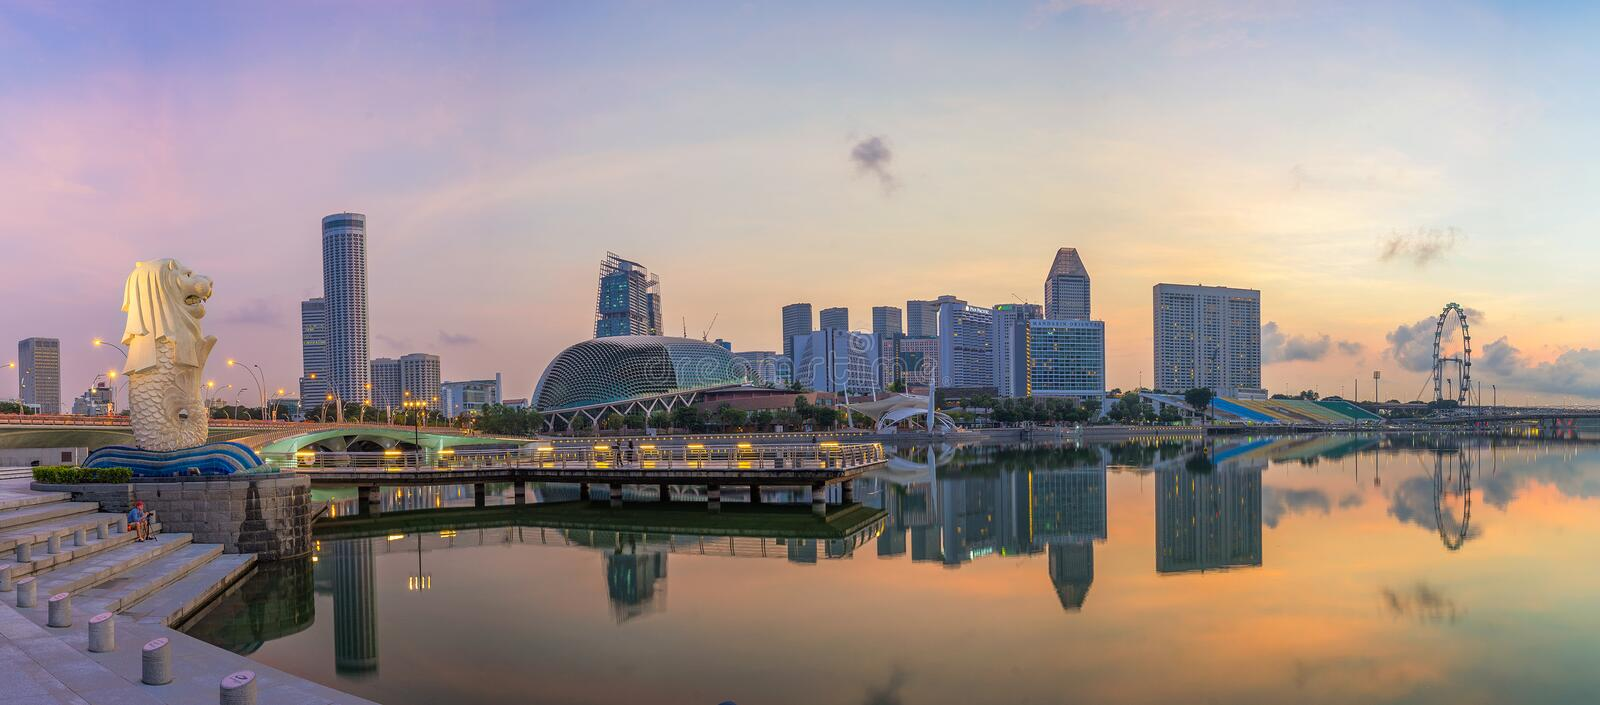 Singapore,Singapore – April 2016 : Aerial view of Singapore city skyline in sunrise or sunset at Marina Bay, Singapore royalty free stock images